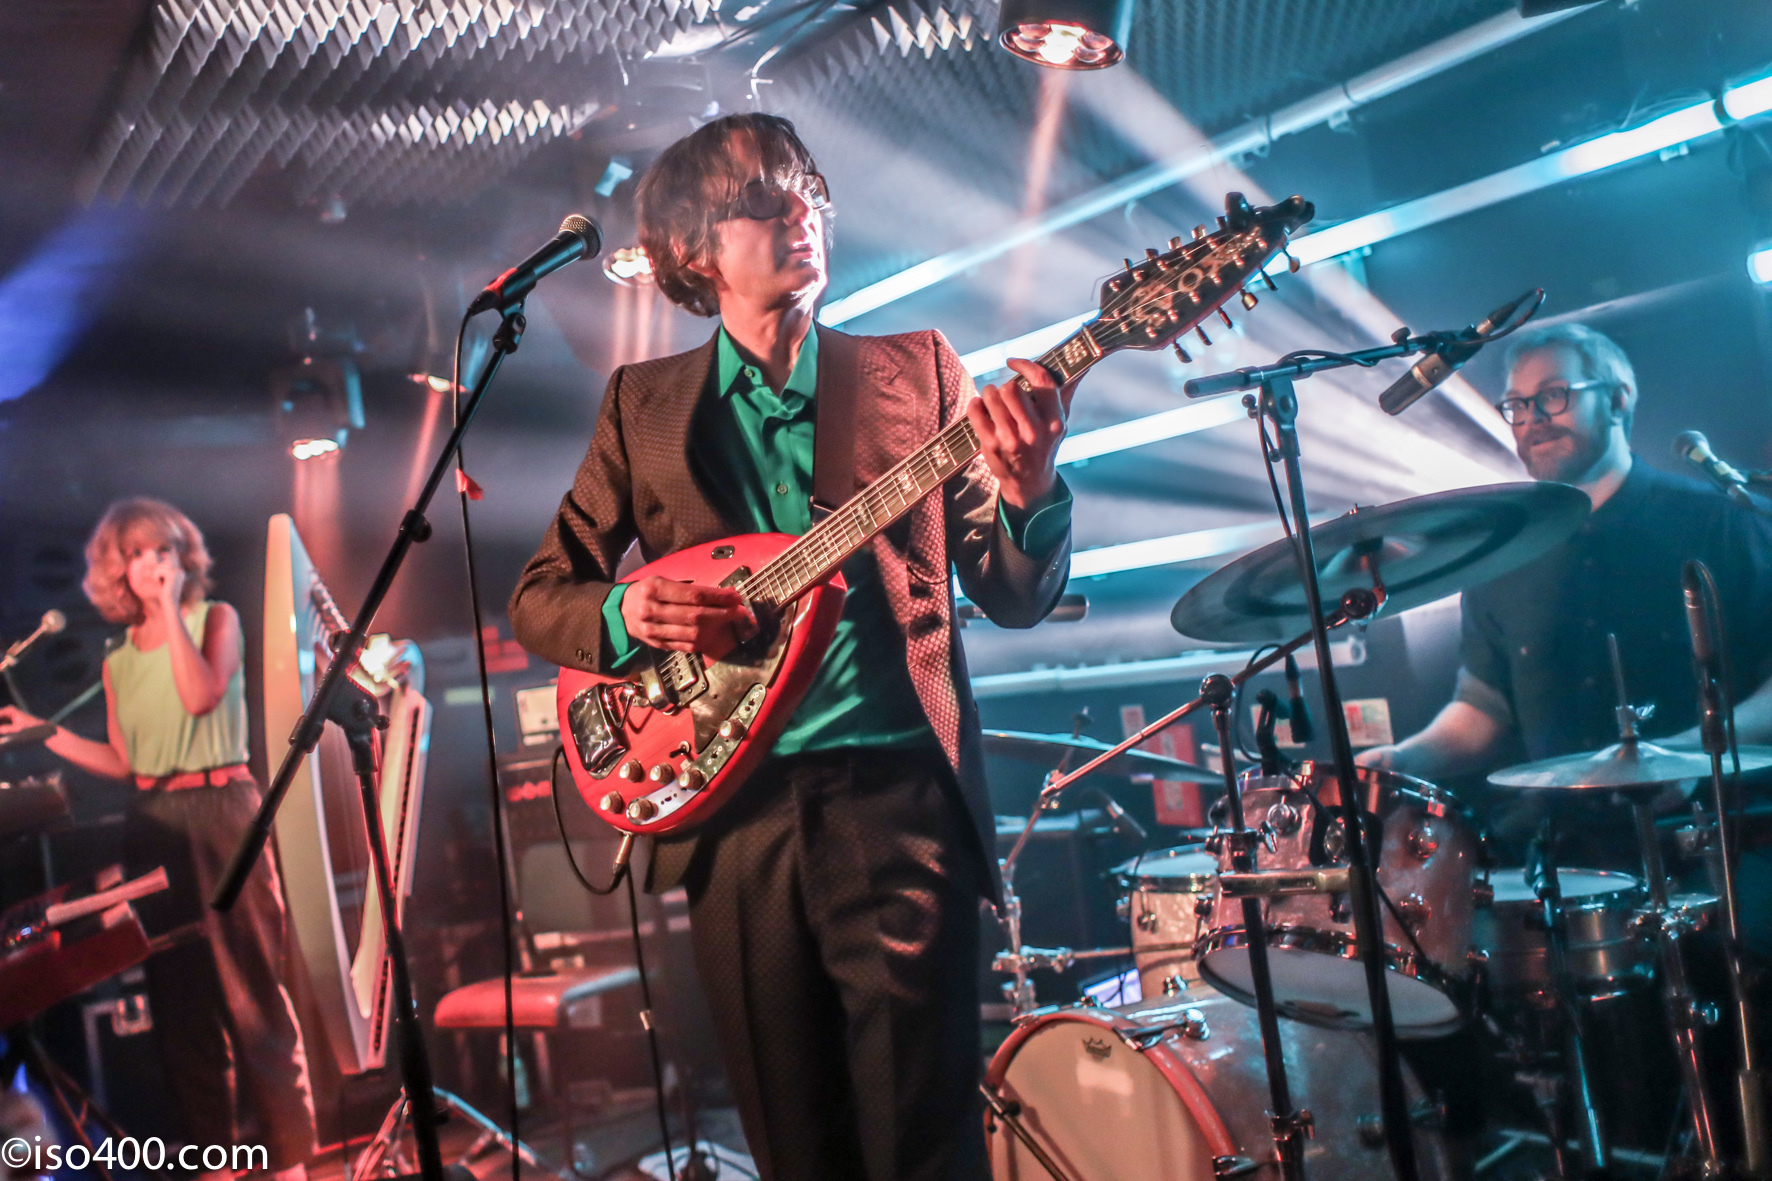 Pulp's Jarvis Cocker to perform at Jodrell Bank's Bluedot festival